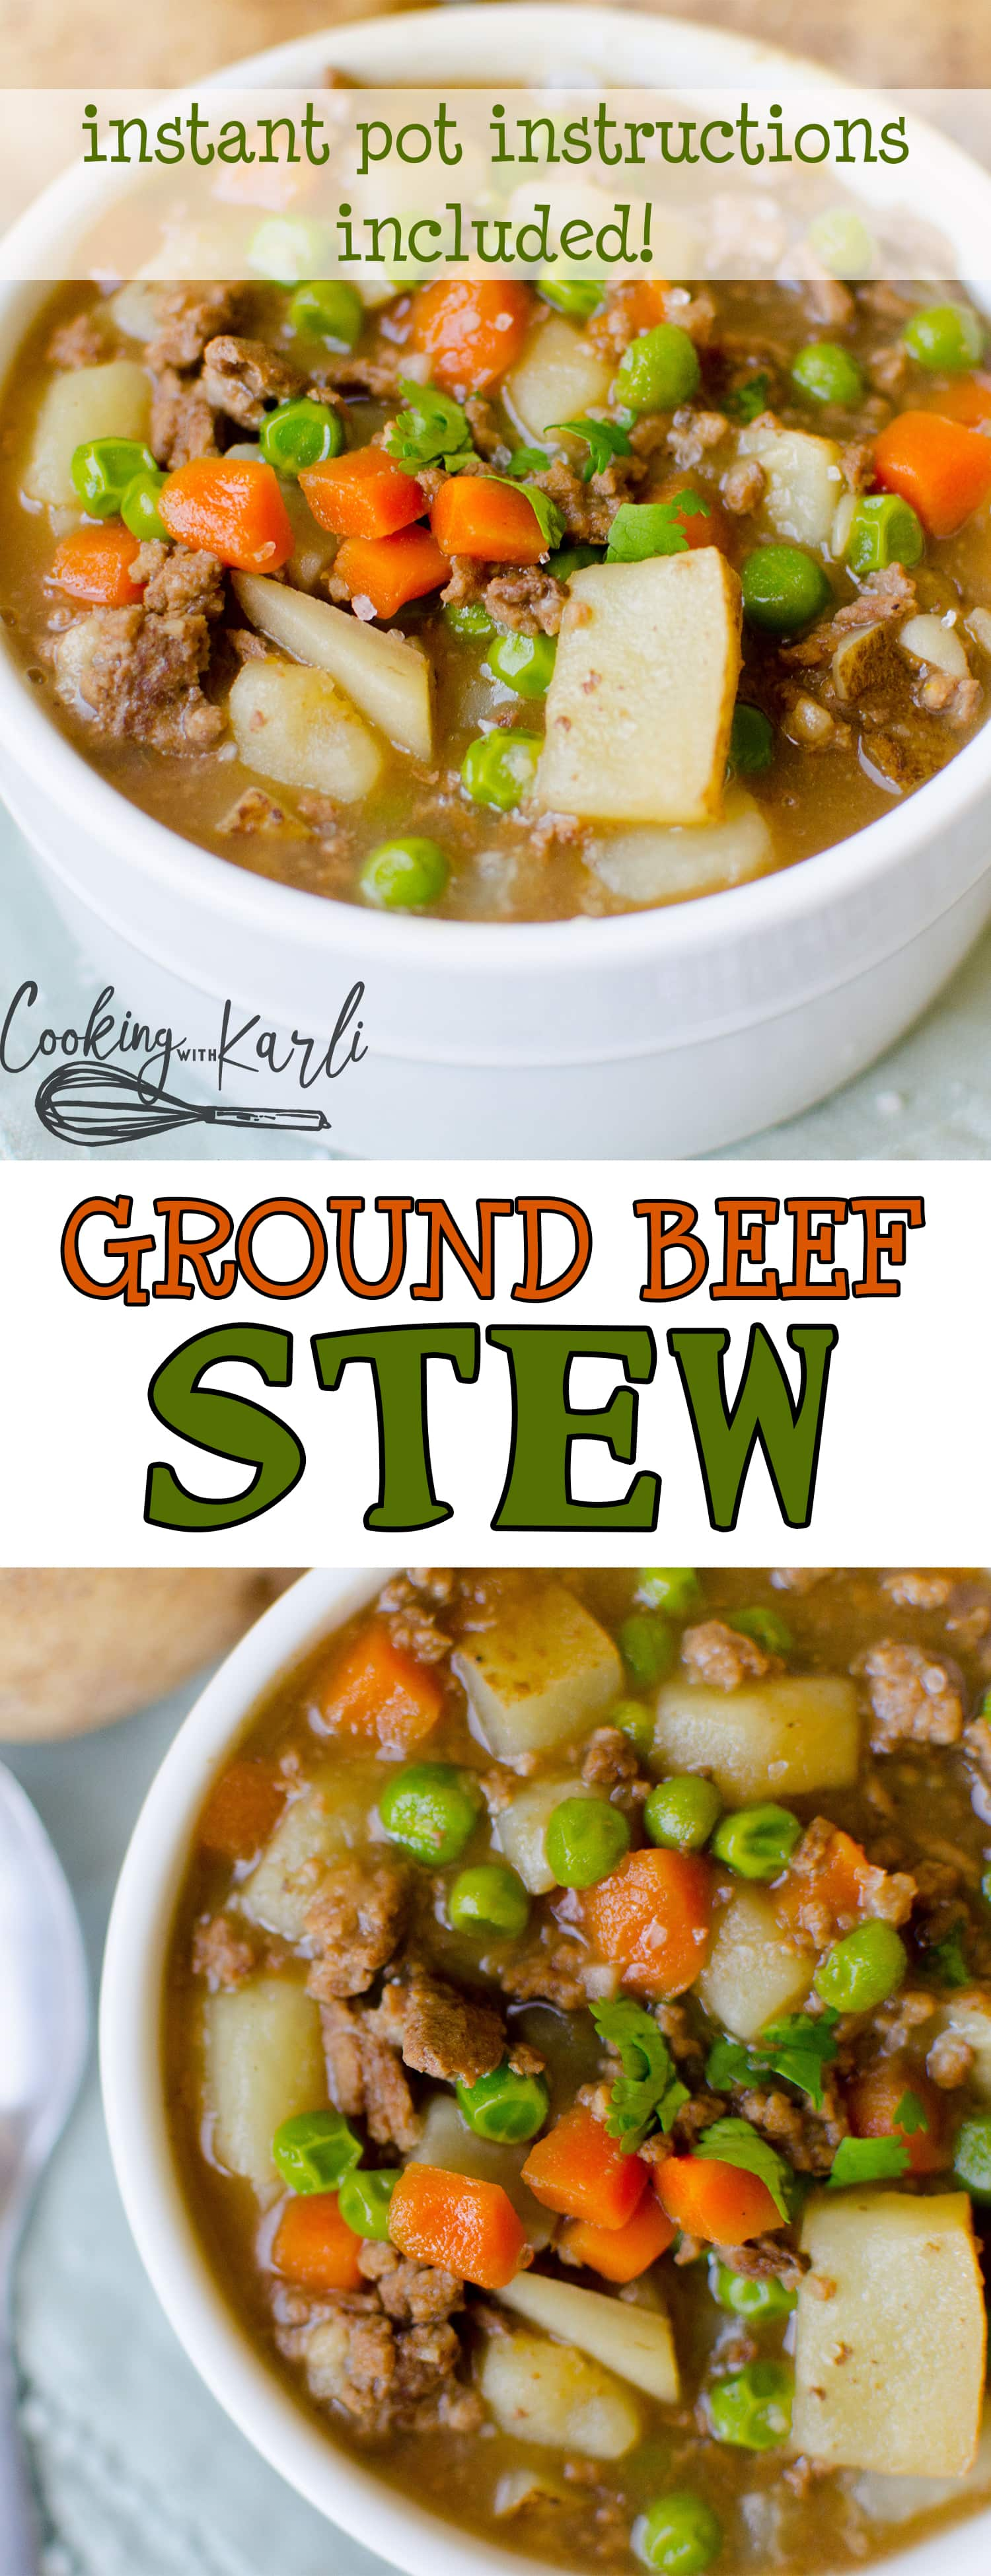 Ground Beef Stew is a thick and creamy gravy with ground beef, potatoes, peas and carrots. Making this in the Instant Pot makes this stew fast and easy! Pair this stew with a crusty dinner roll and you've got yourself one hearty meal! |Cooking with Karli| #instantpot #groundbeef #stew #recipe #dinner #maindish #hearty